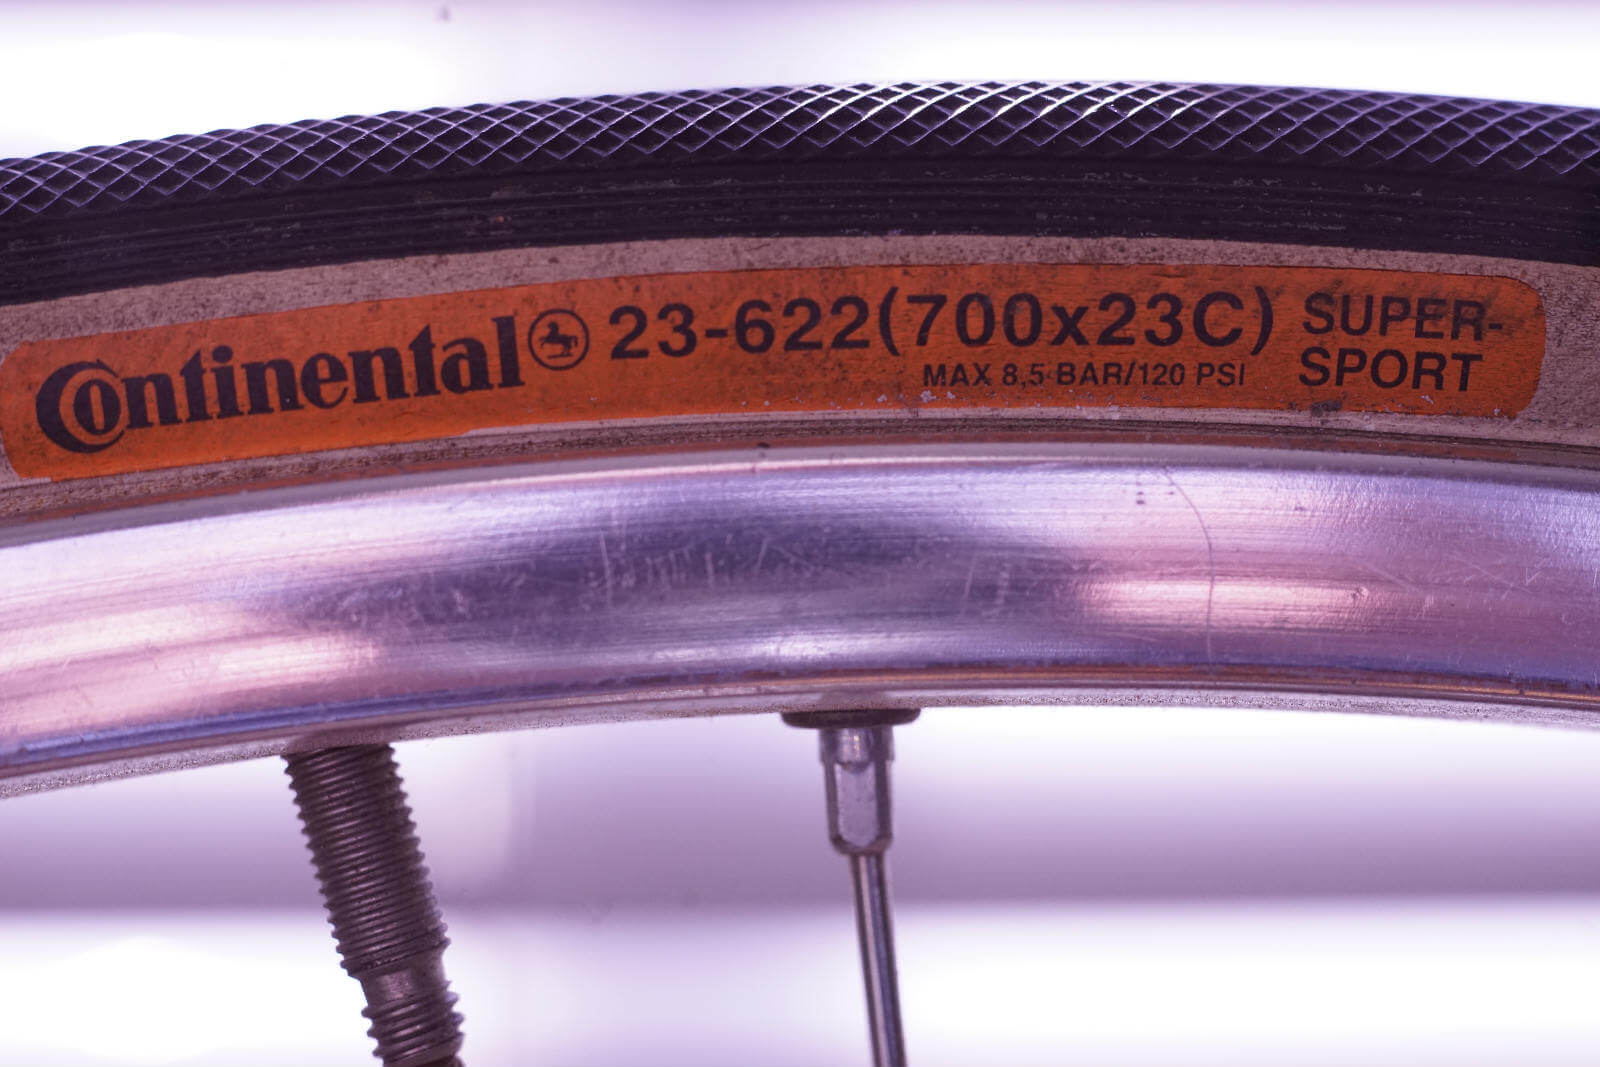 Maximum pressure is 8,5 bar; a heavy man should rather choose 25mm tyres